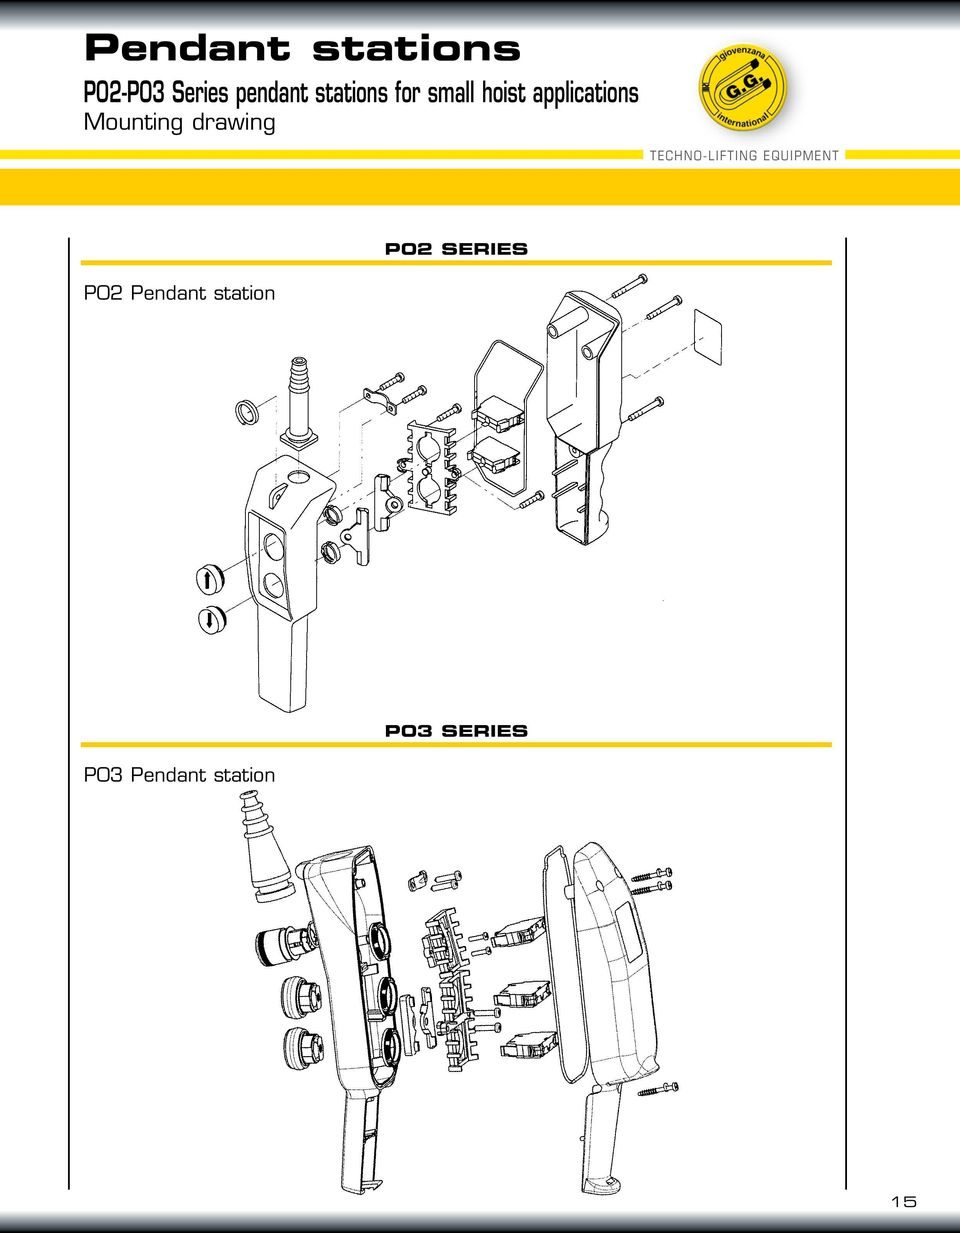 hight resolution of mounting drawing techno lifting equipment p02